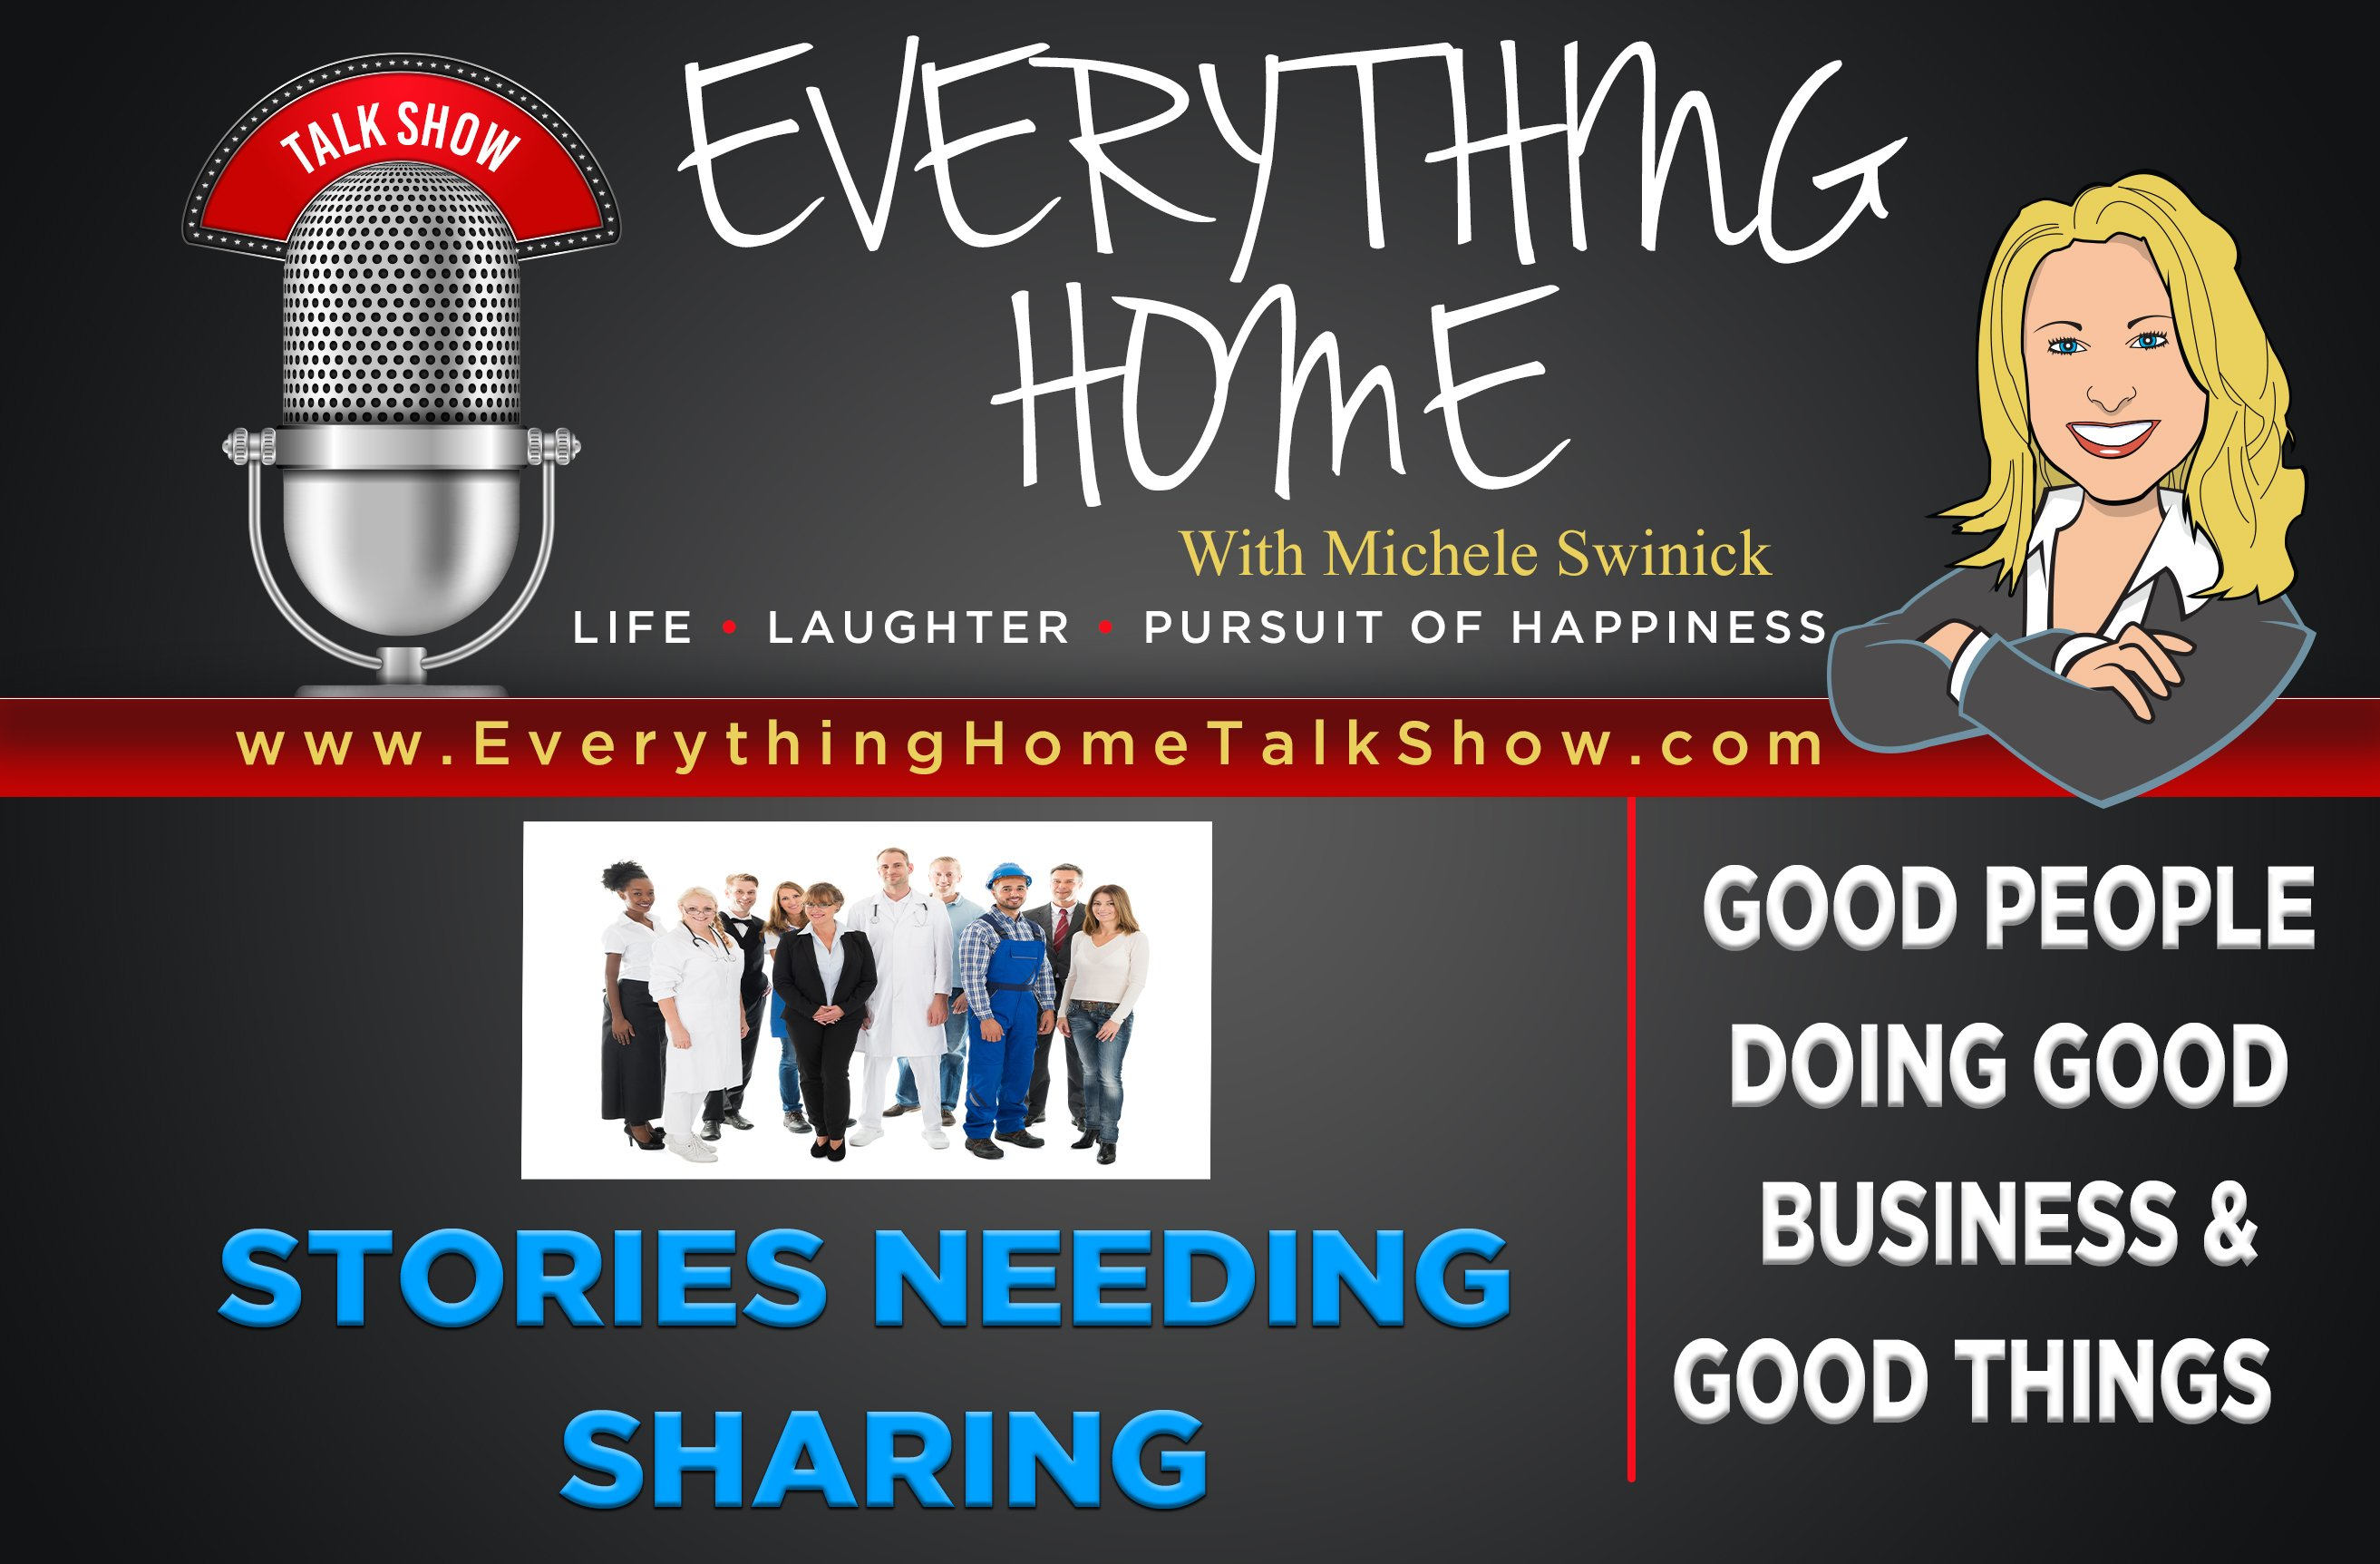 Everything Home Talk Radio Show & Podcast - STORIES NEEDING SHARING - Banner